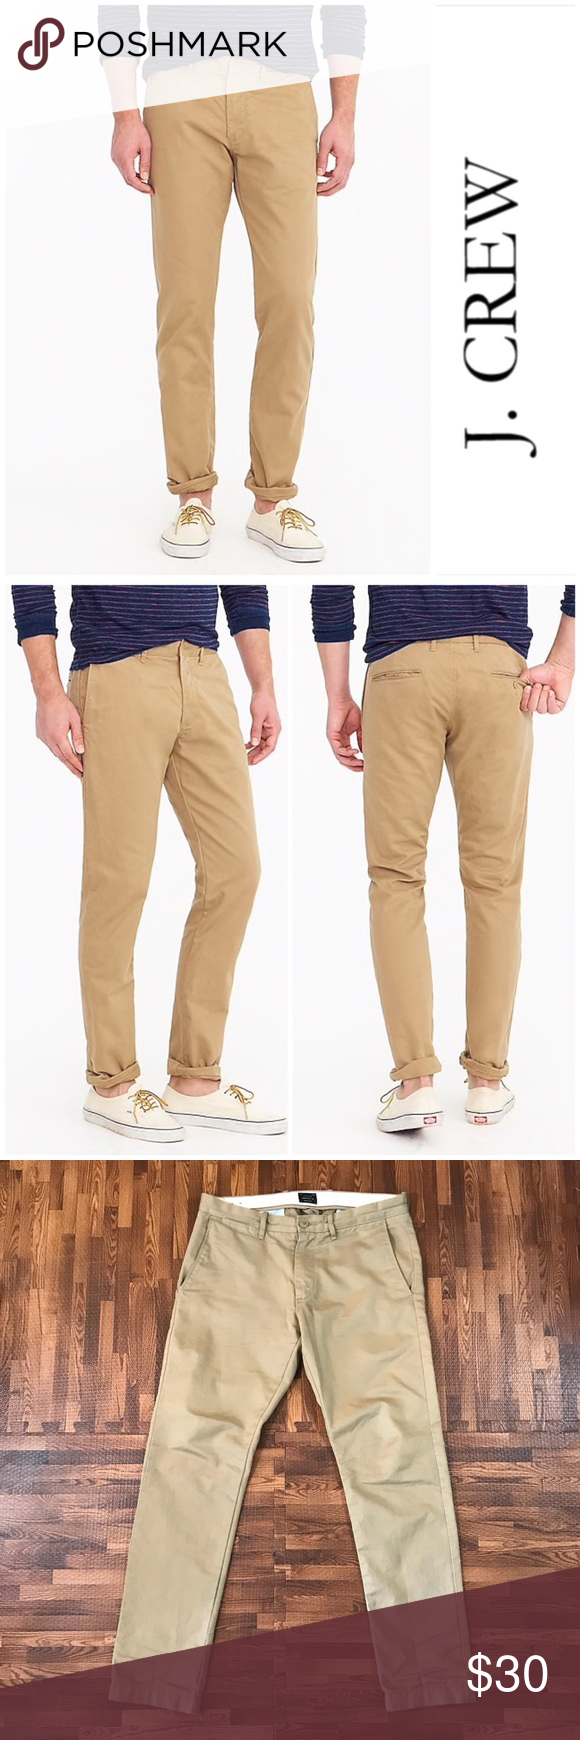 daf390e326f7 J. Crew s 484 Slim Fit Broken In Chino 484 Slim-fit pant in Broken